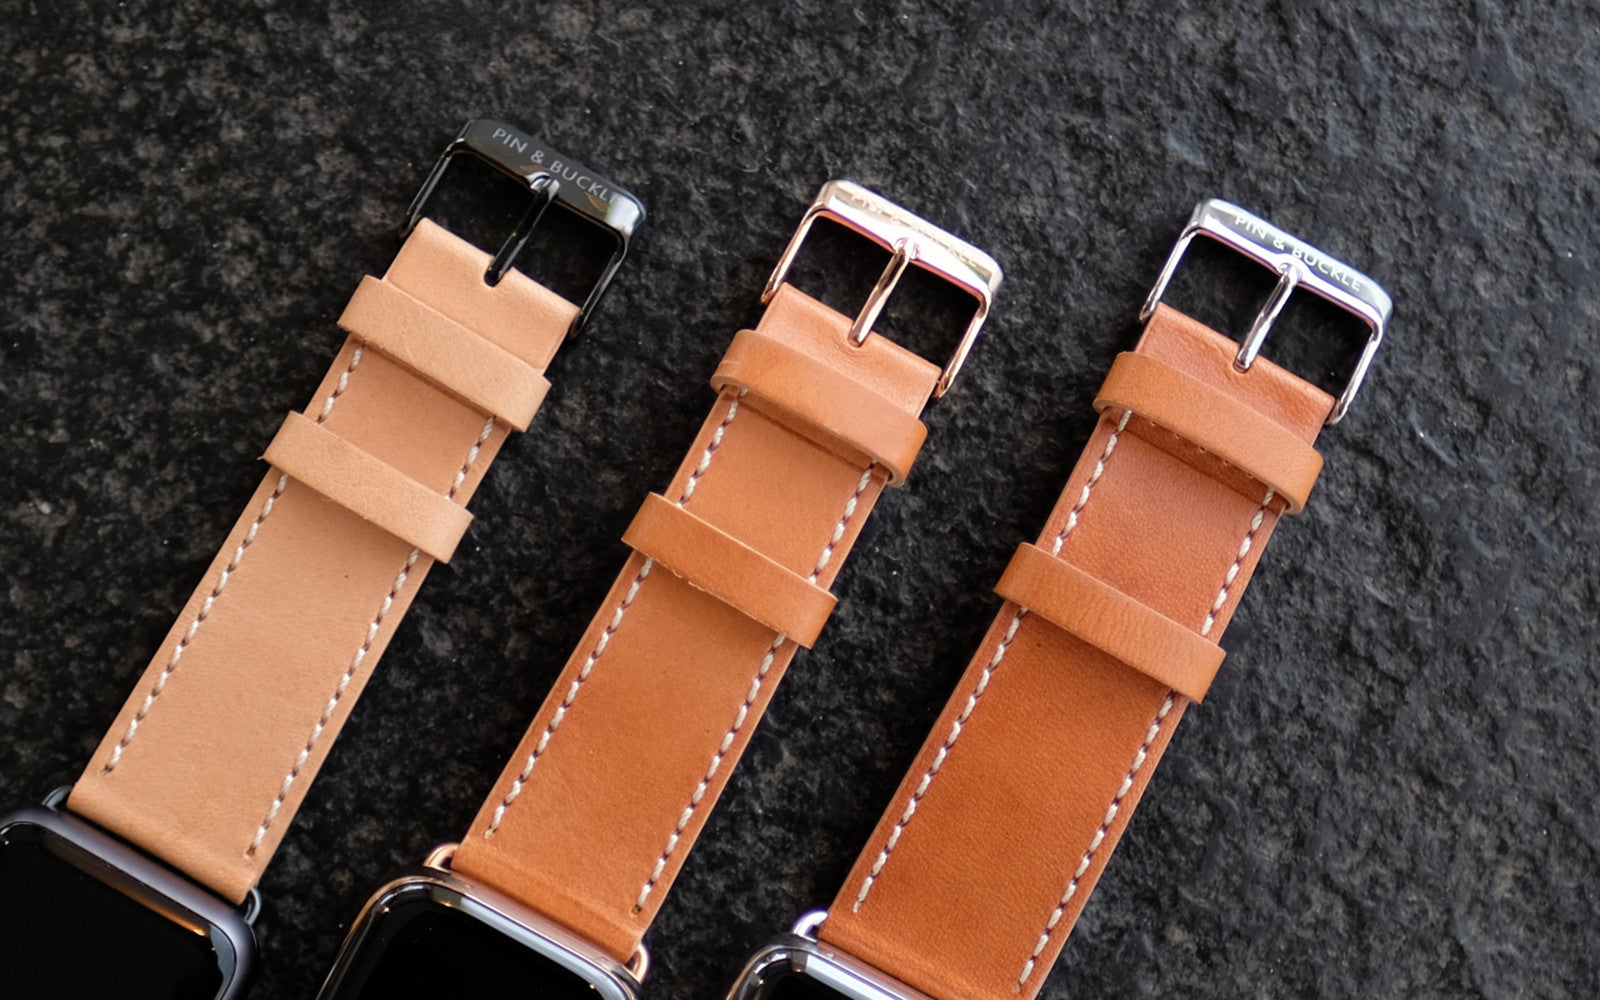 Vachetta Leather Apple Watch Band by Pin & Buckle - Italian Full-Grain Leather - Patina